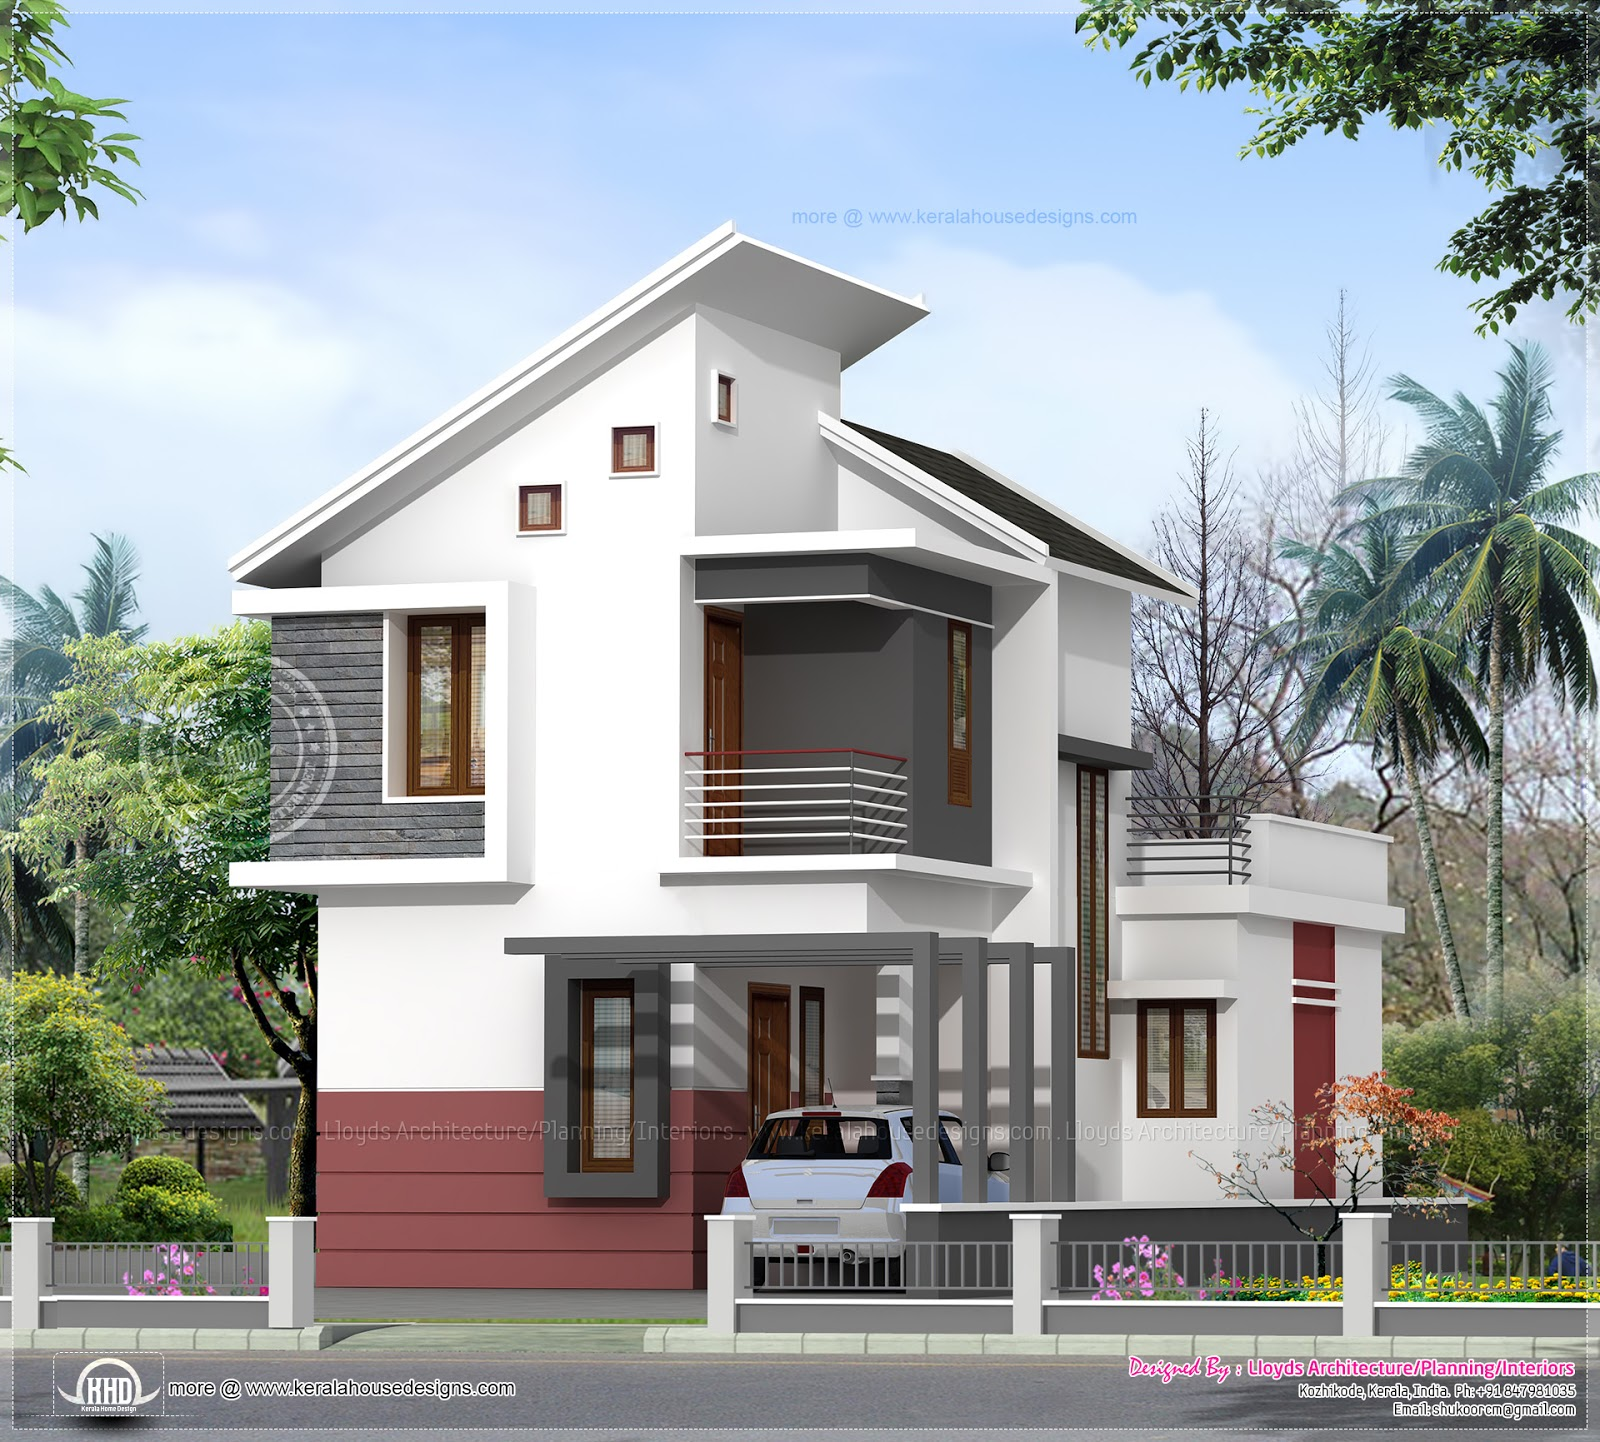 1197 Sq Ft 3 Bedroom Villa In 3 Cents Plot Home Kerala Plans